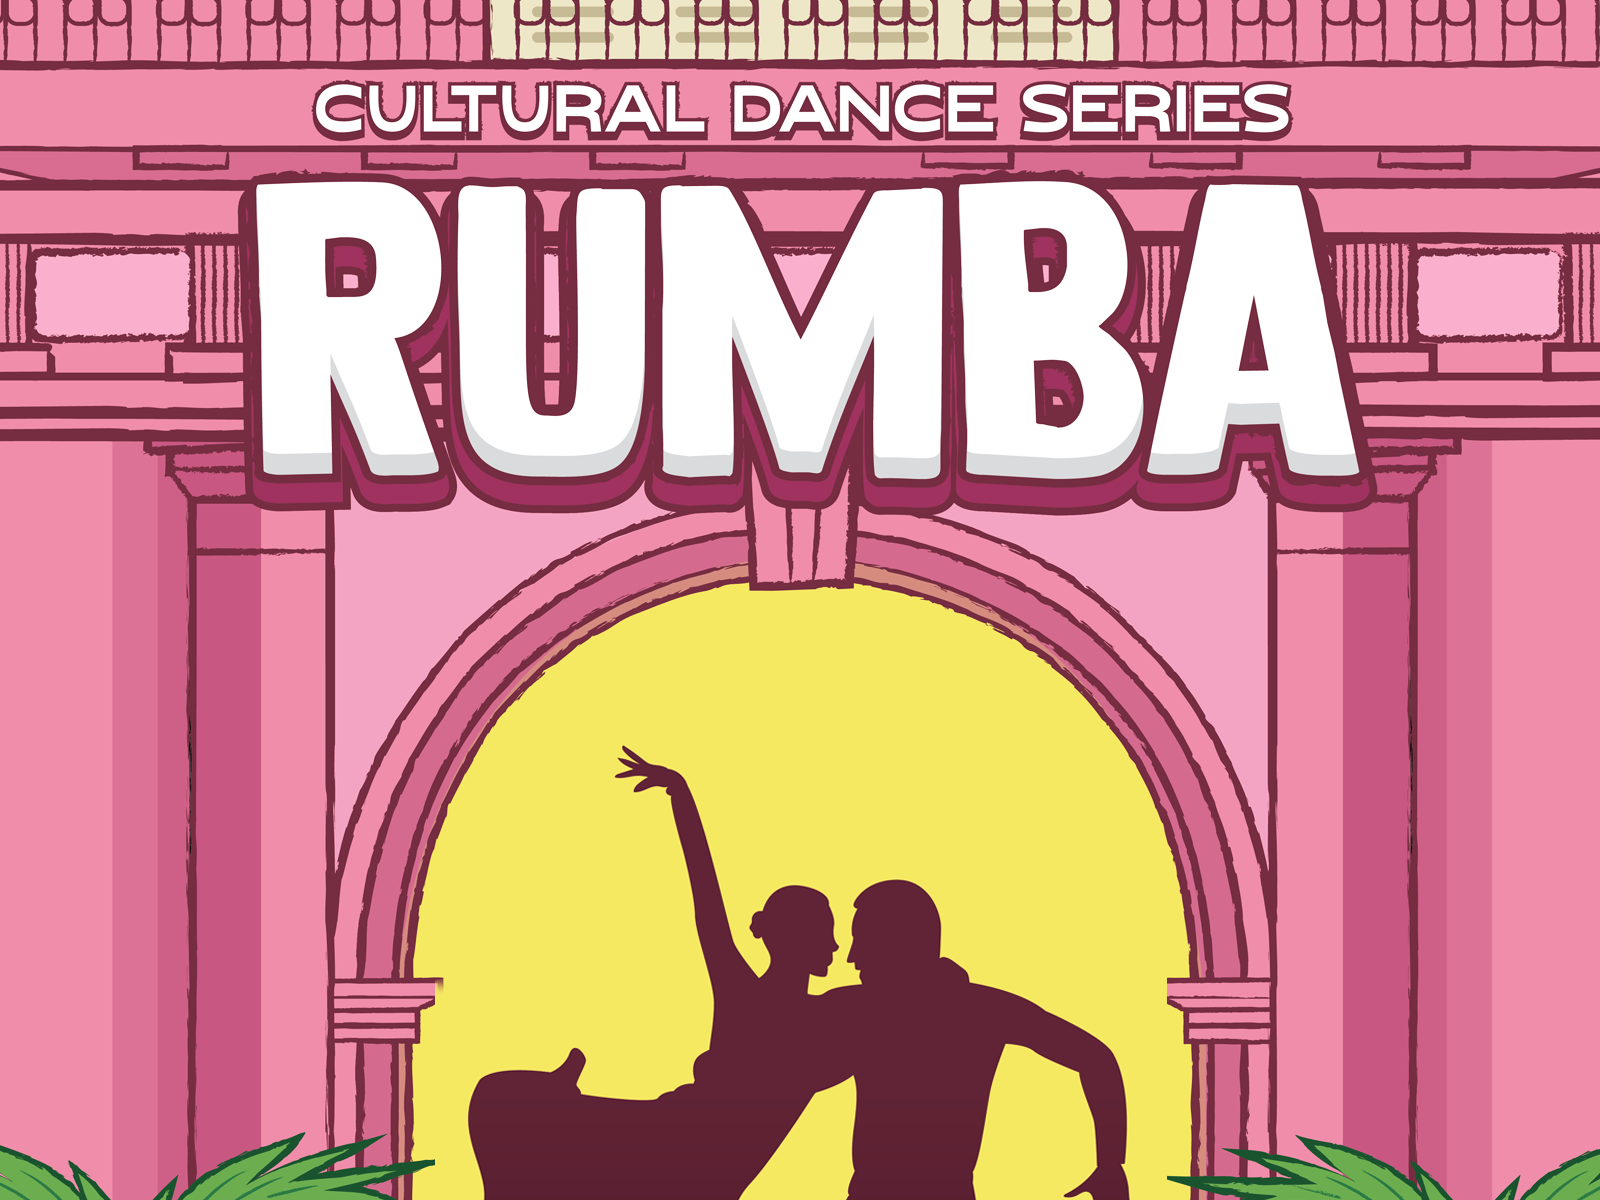 Rumba Dance Series Poster by Ava Buric on Dribbble